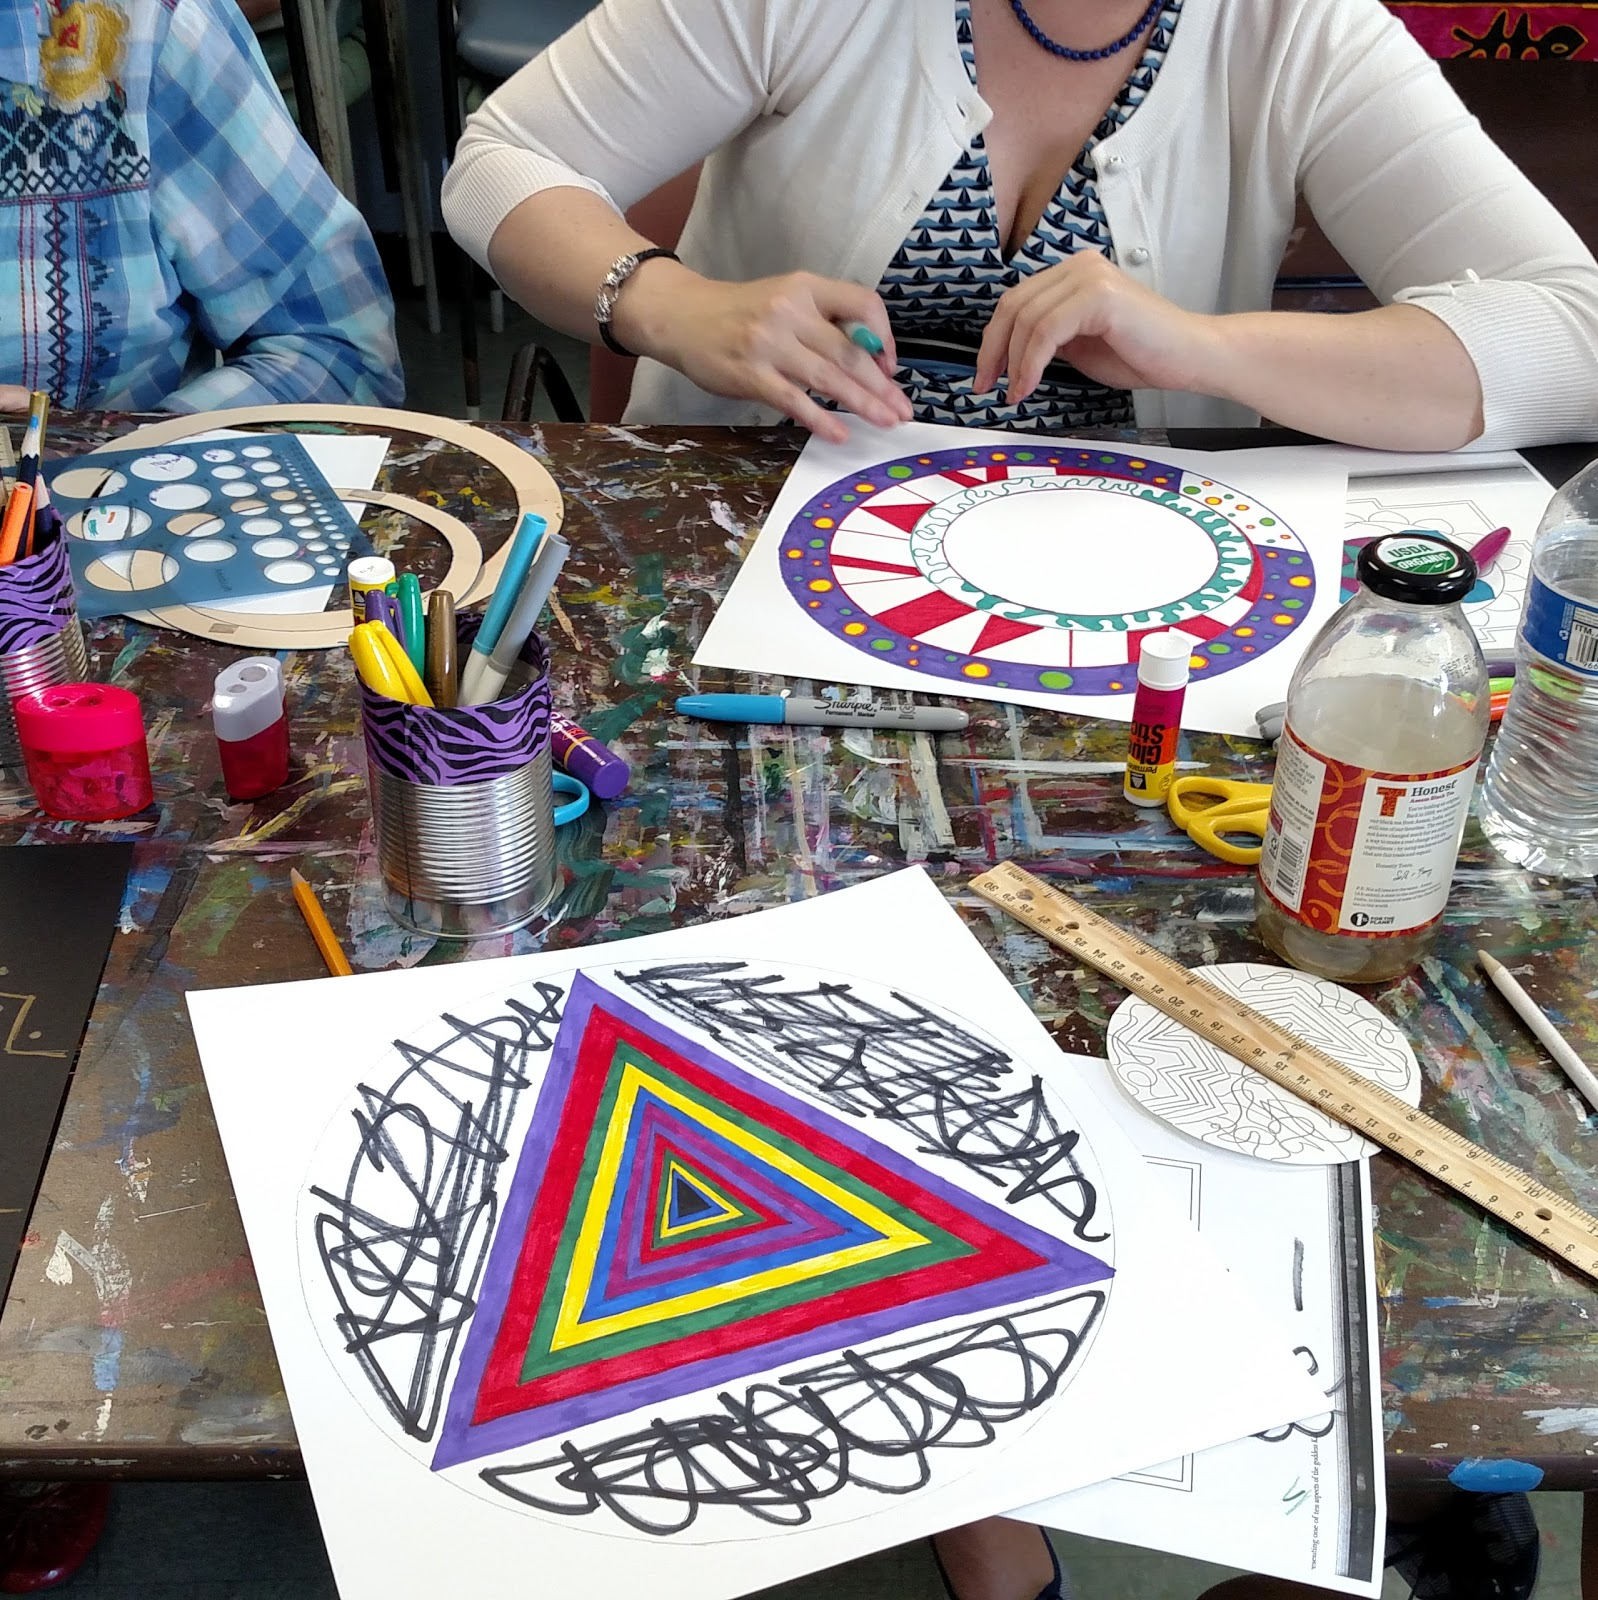 Art workshops 4 women los angeles for Craft workshops los angeles